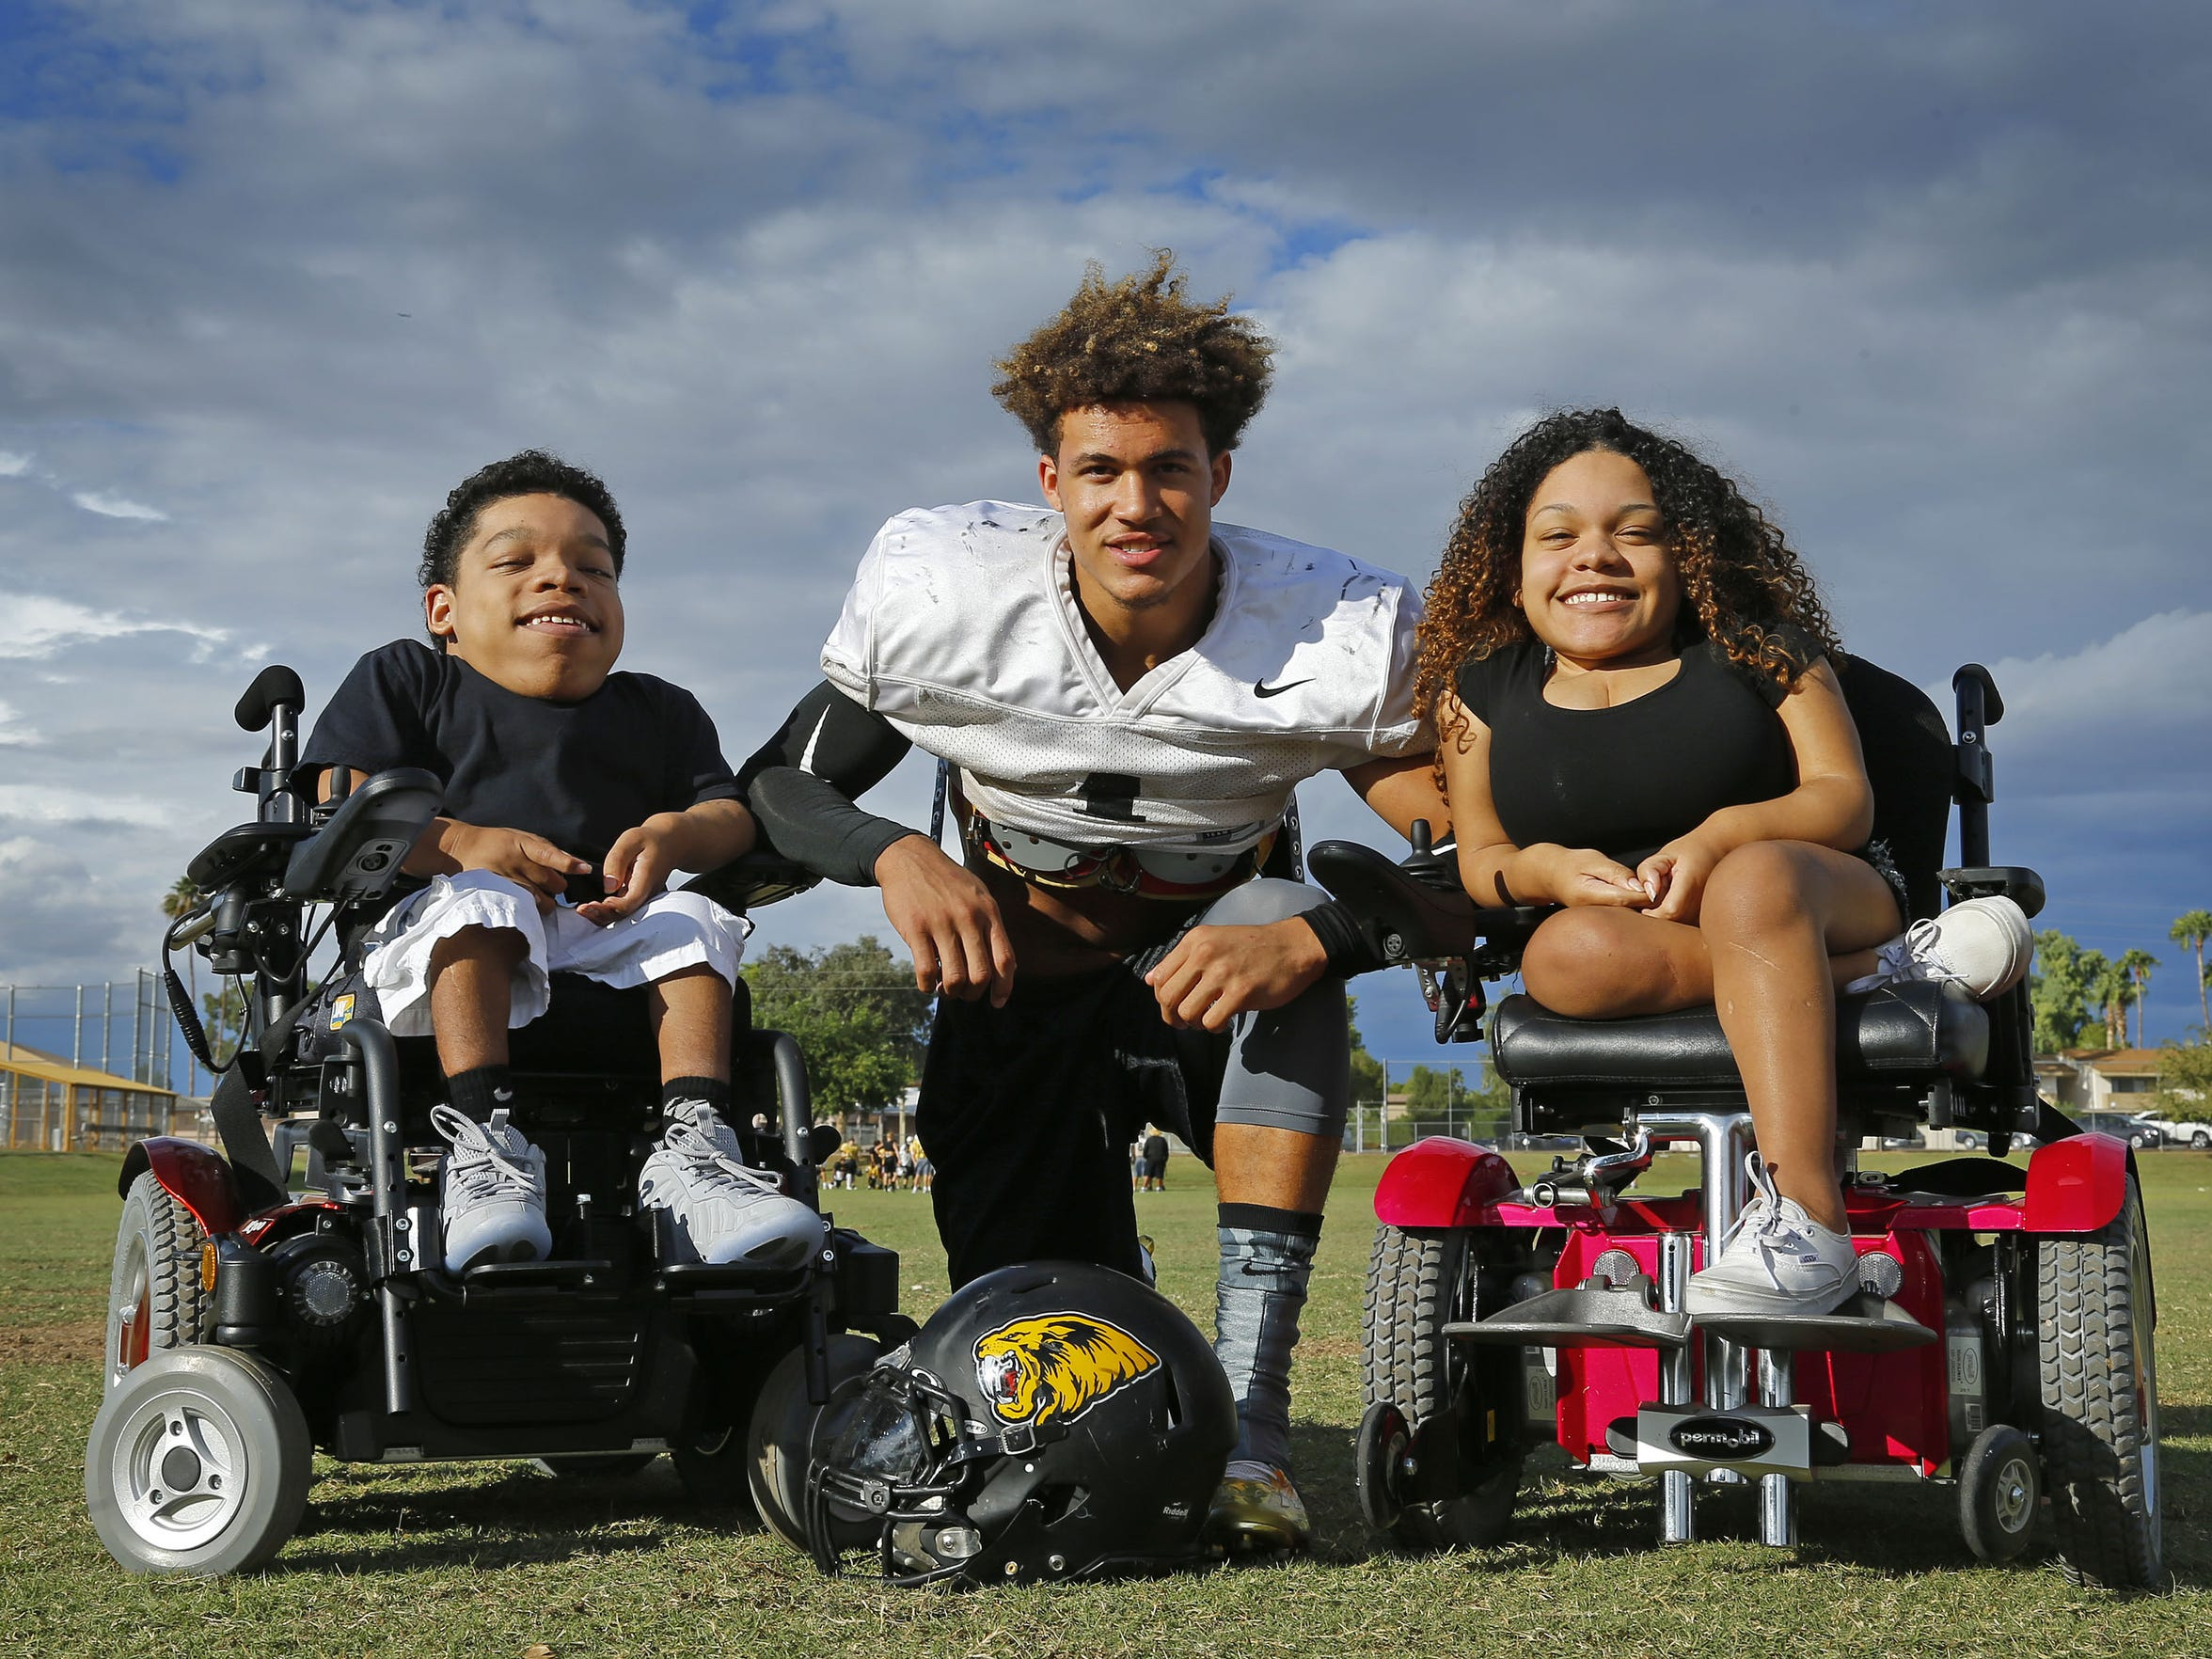 Saguaro High football player Byron Murphy (17) with his biggest fans, his 2 cousins, Justin and Kianna White, on Wednesday, Oct. 21, 2015 in Scottsdale, Ariz.